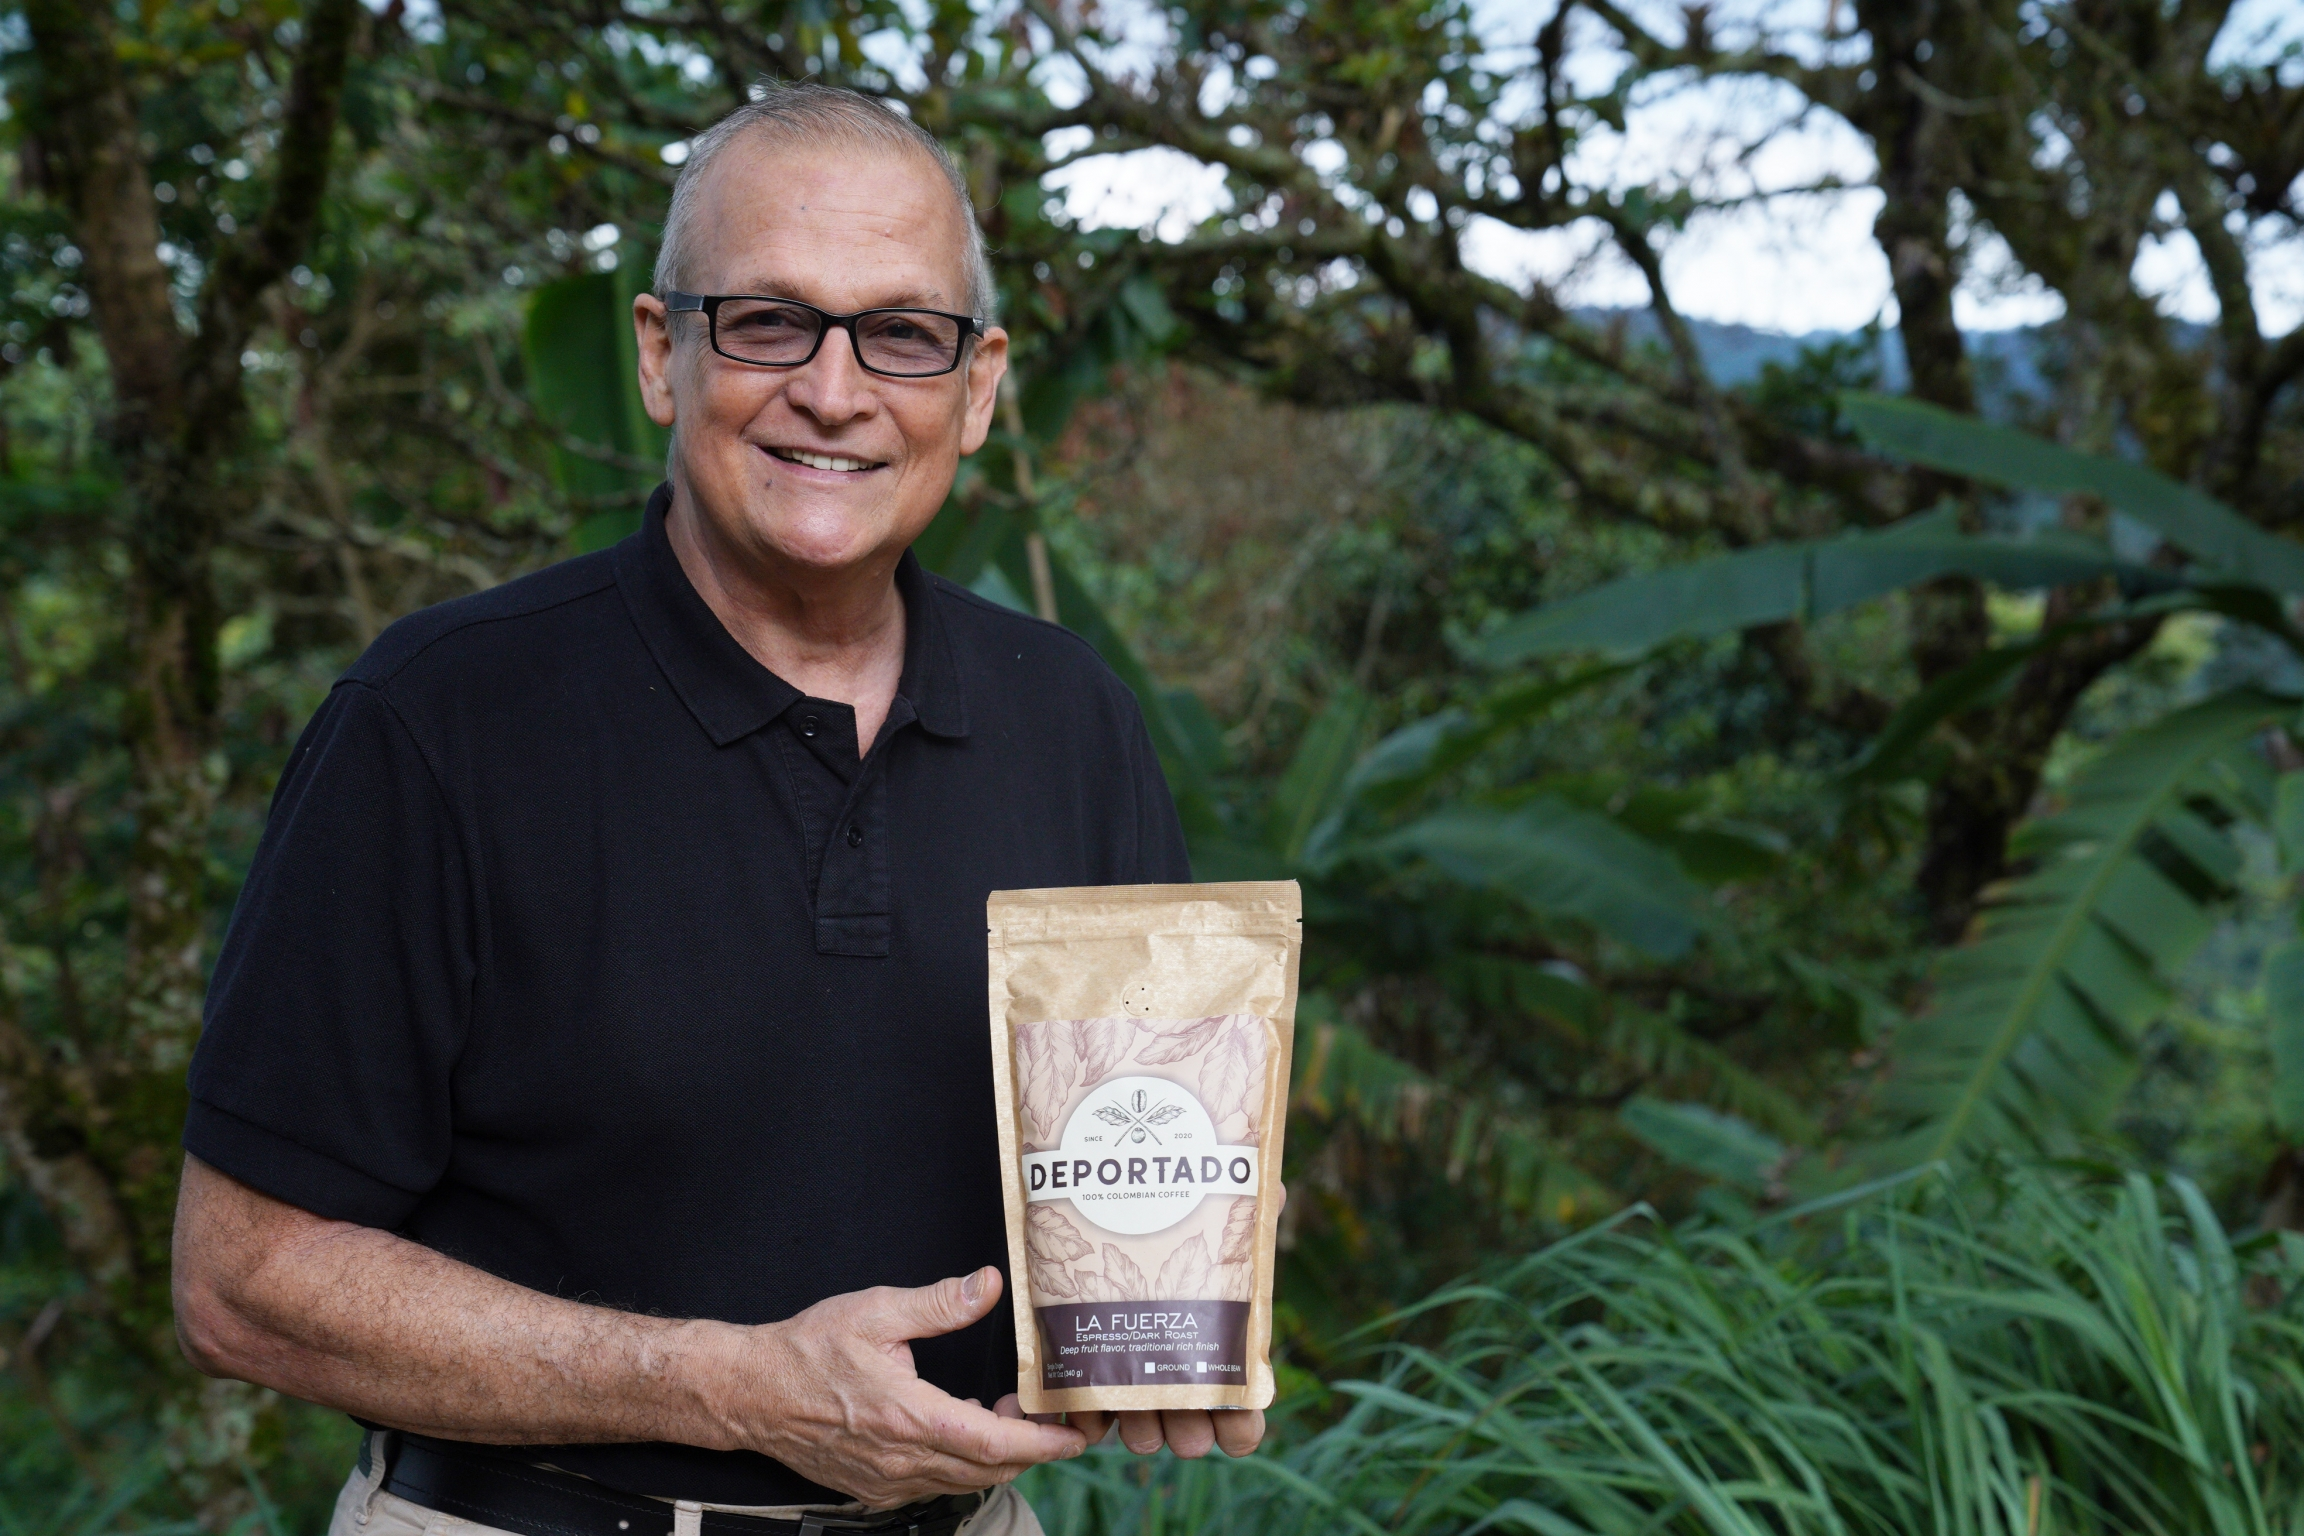 In April, Deportado Coffee exported its first batch of coffee to the United States. Mauricio Zuñiga hopes the brand will spark conversations on immigration reform.